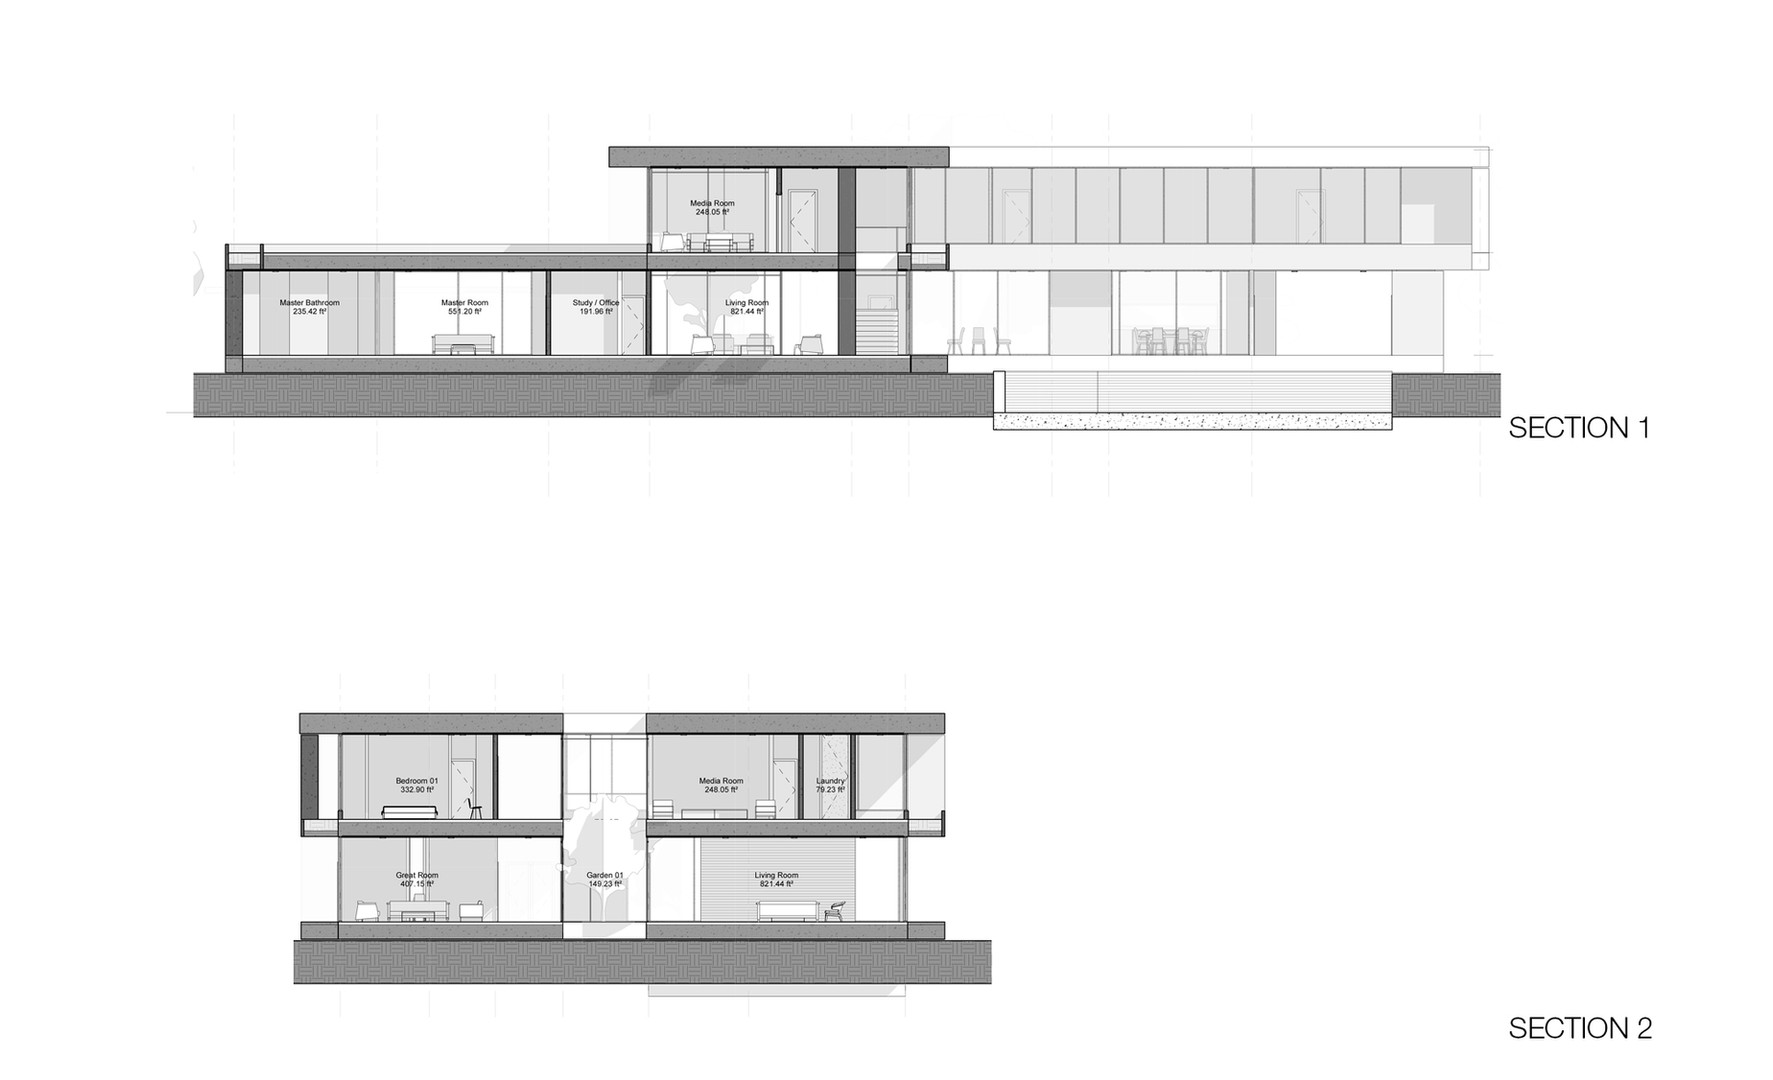 Sections_01_Frida_Picasso Homes.jpg